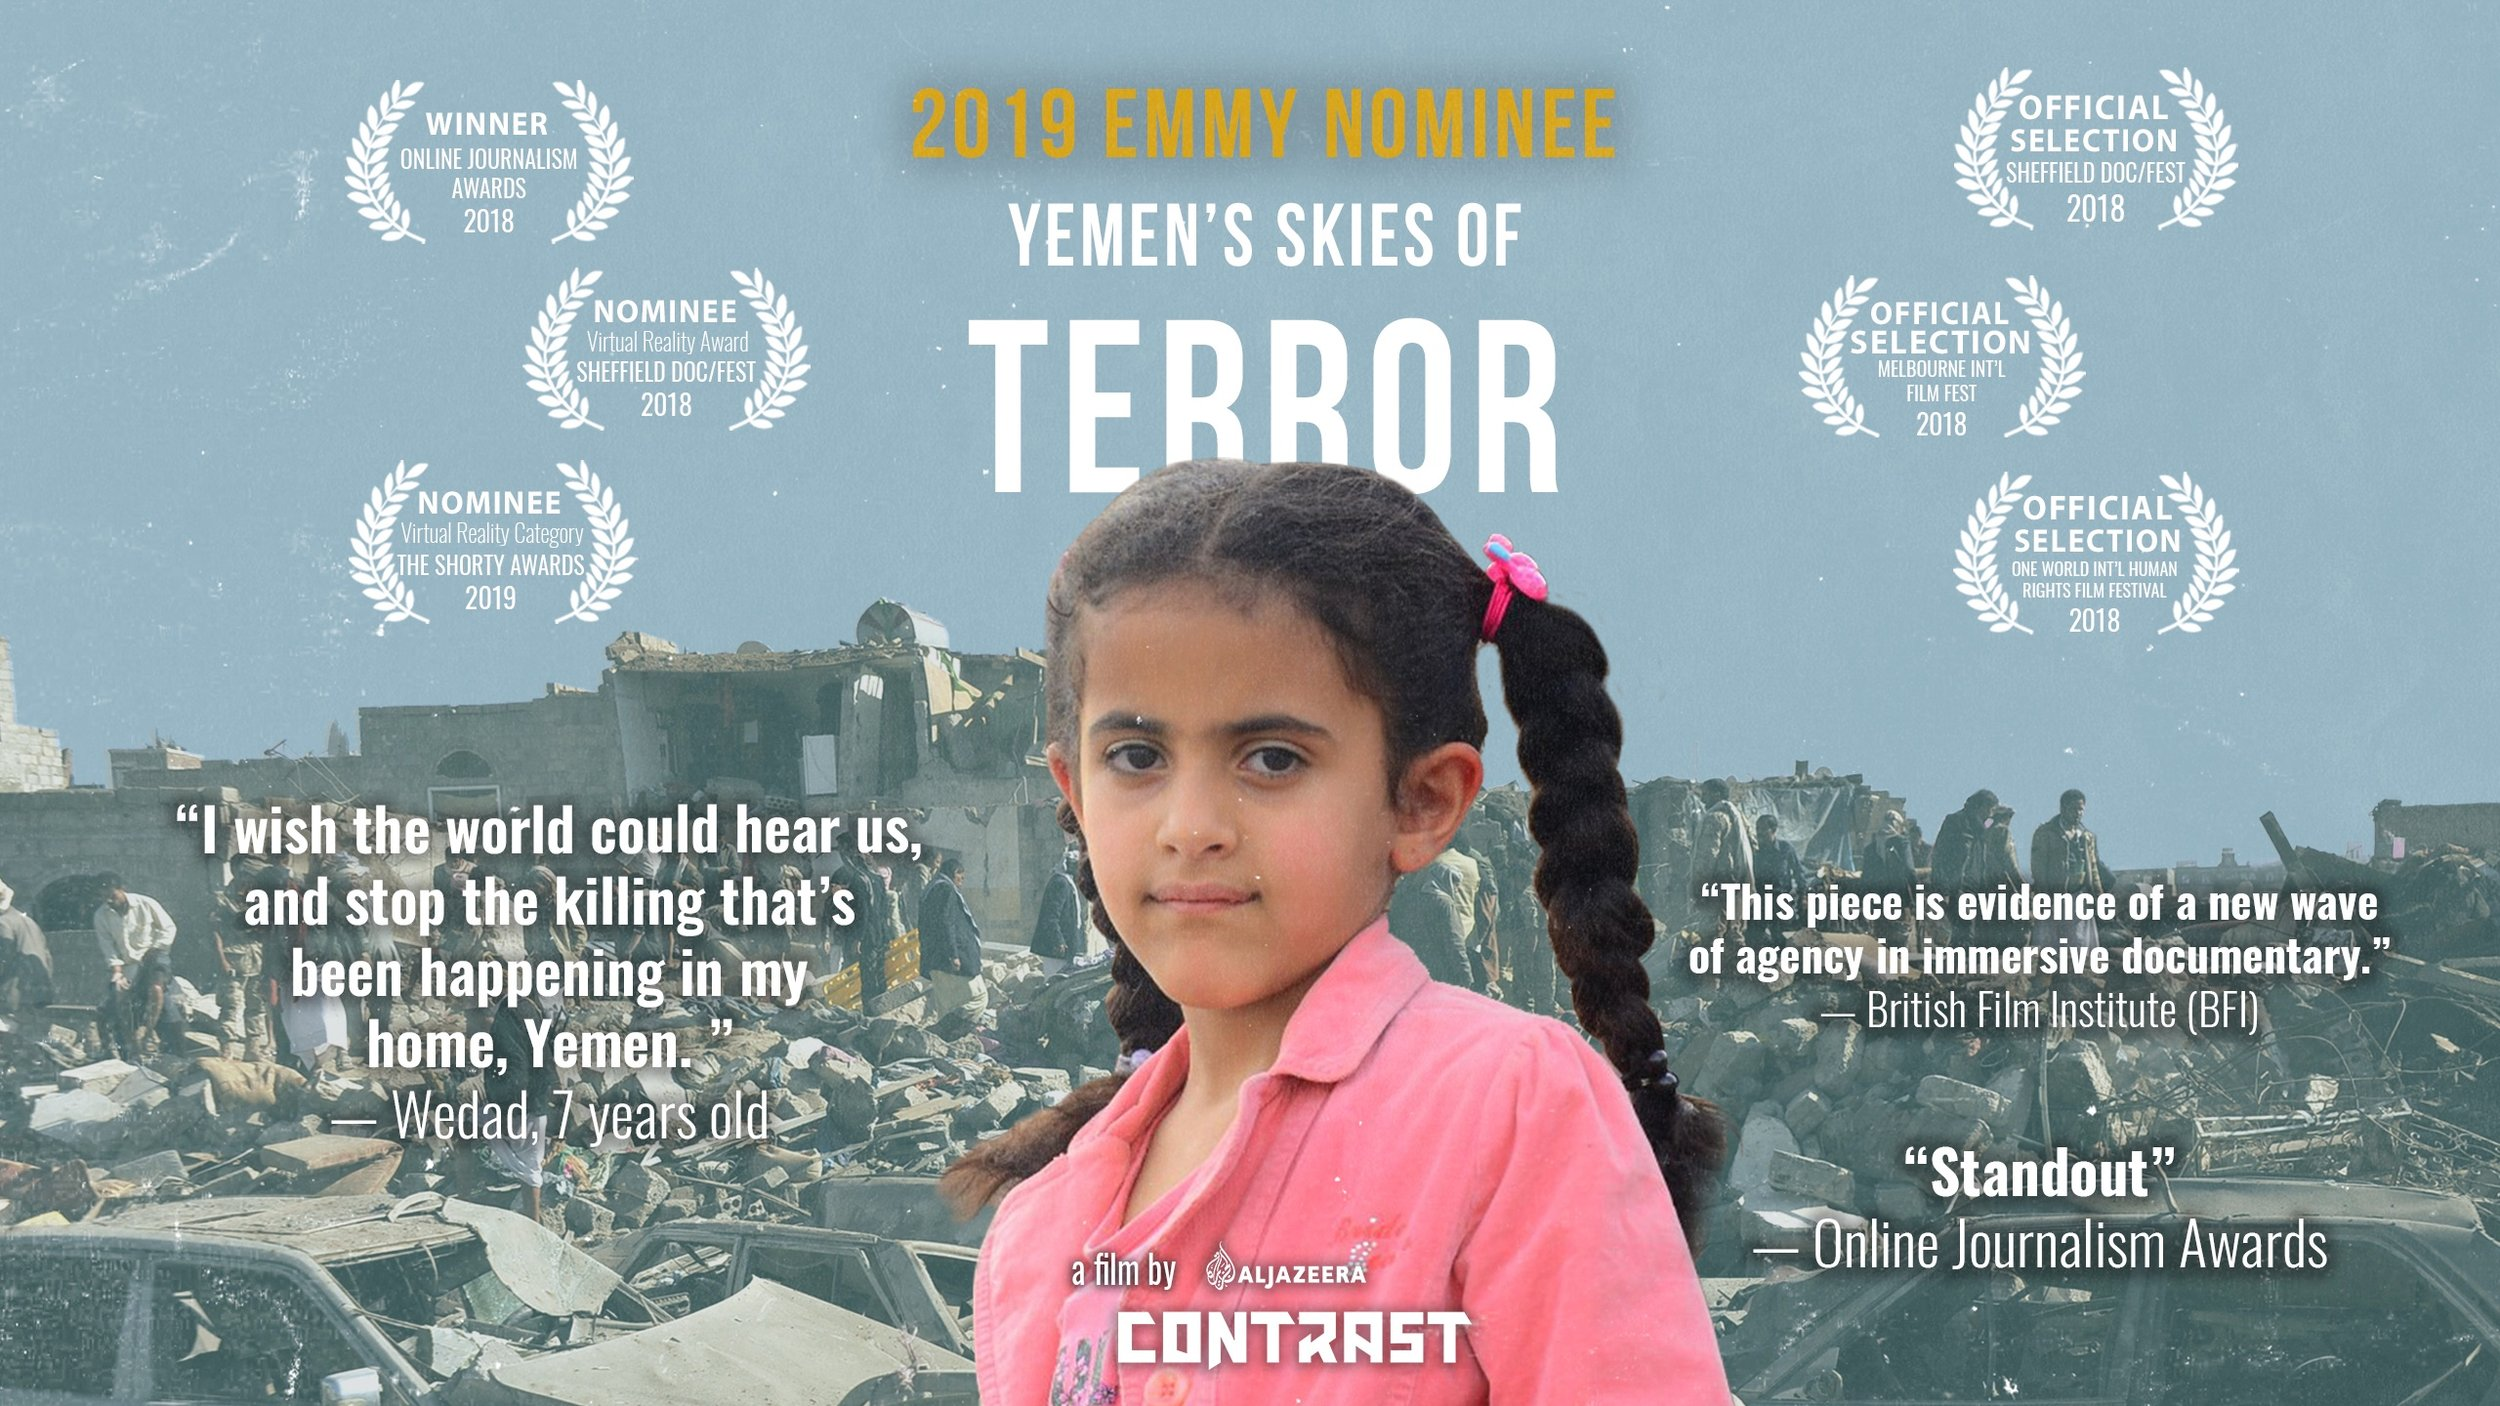 Yemen's Skies of Terror - As Yemen enters its fourth year of war, experience how the Saudi-led coalition's 16,600+ air raids have impacted the lives of three young Yemenis who live in constant fear of the skies.